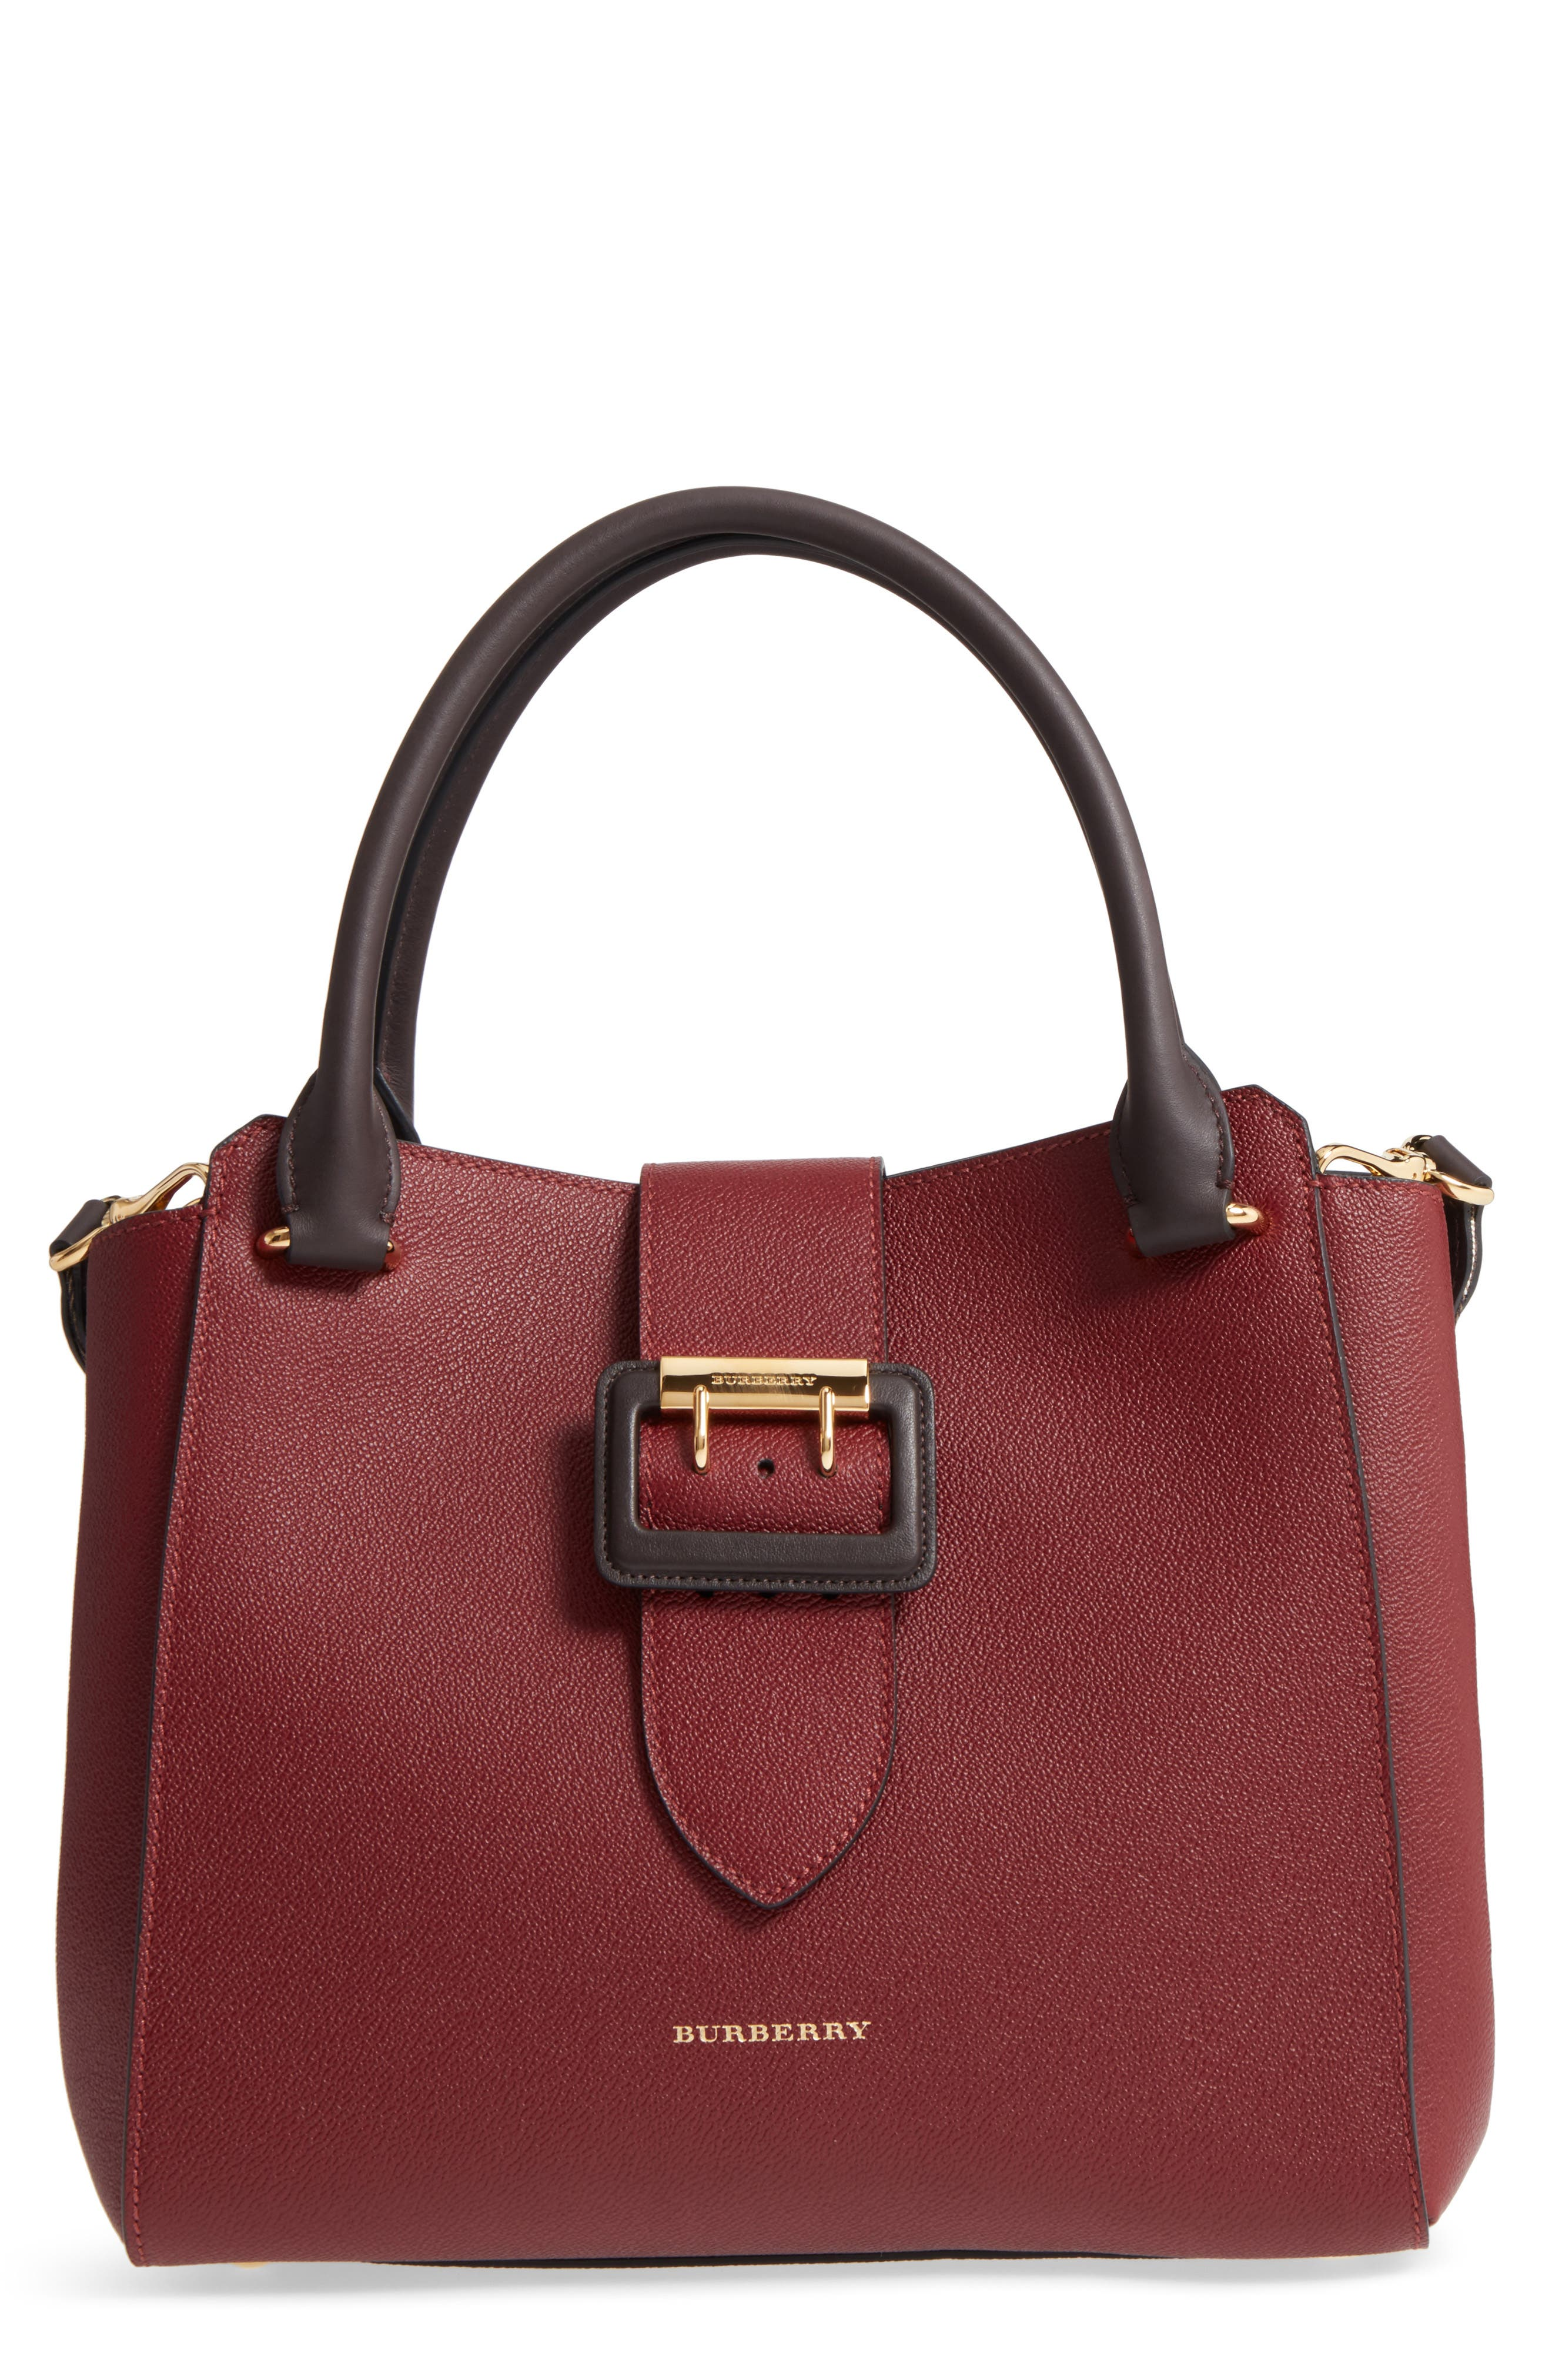 Burberry Medium Calfskin Leather Tote